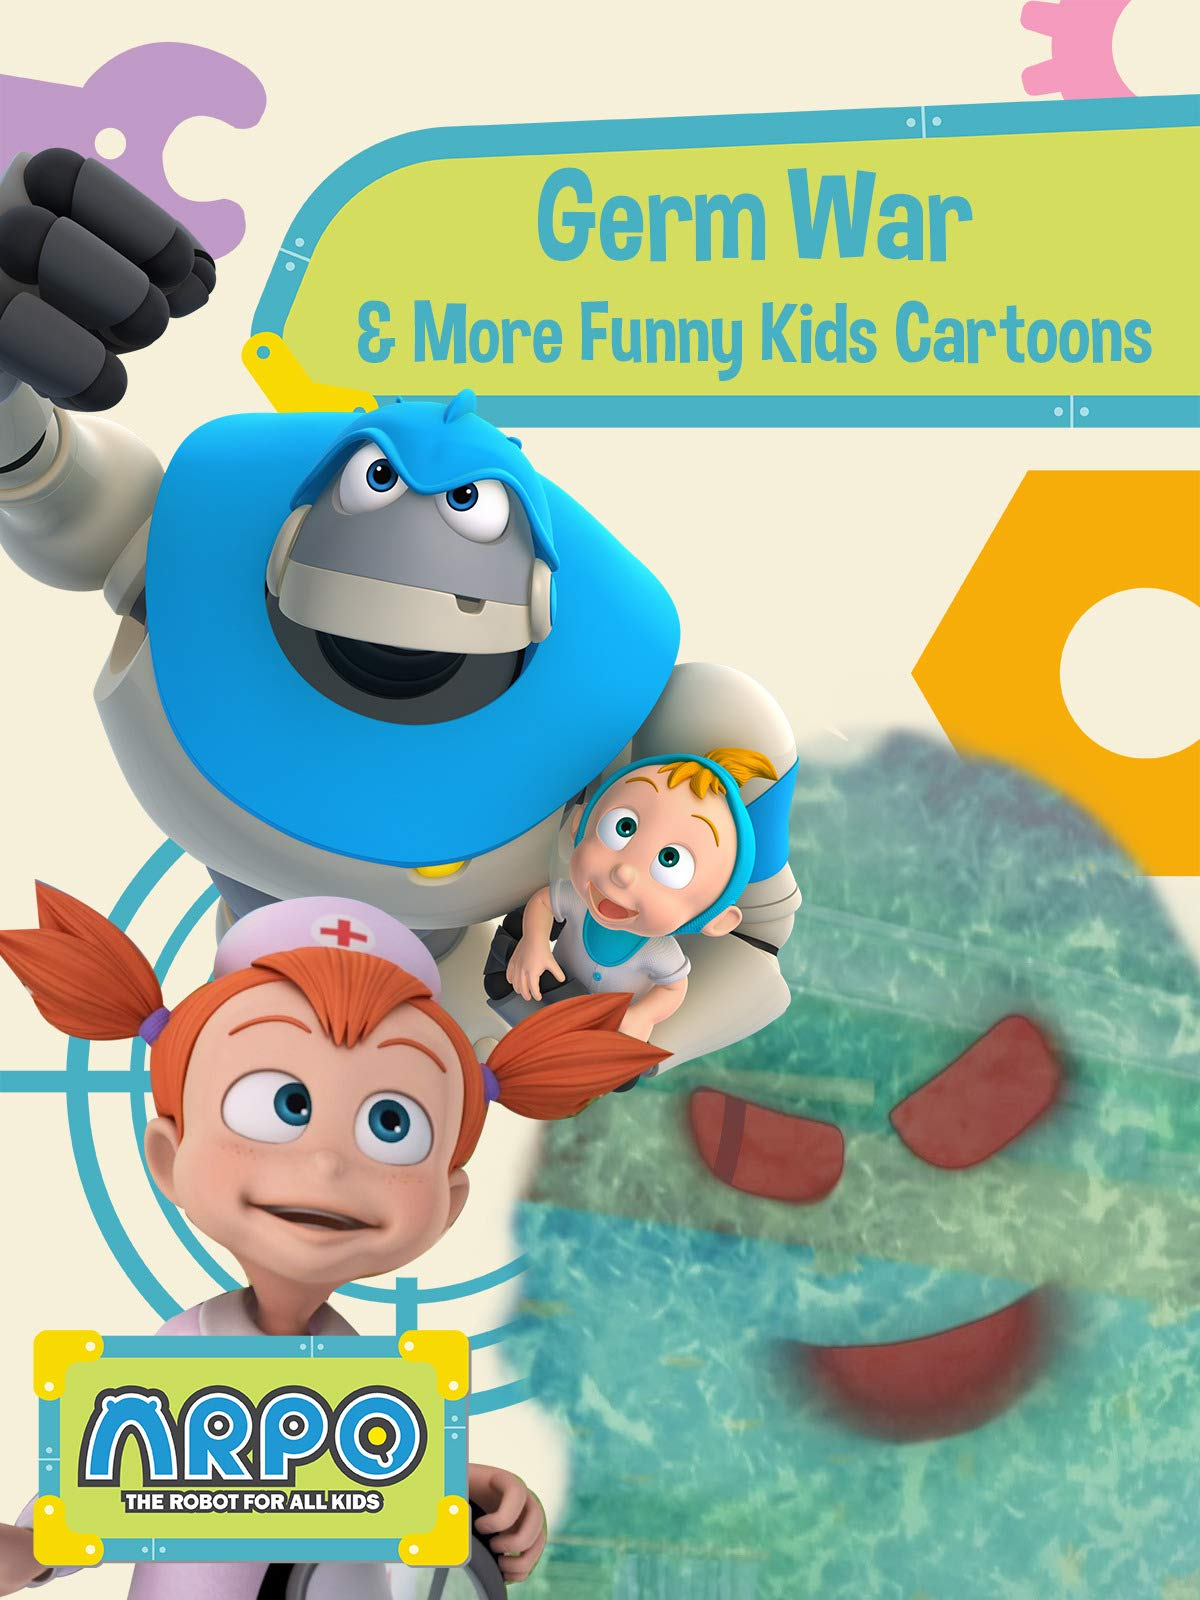 Arpo the Robot for All Kids - Germ War & More Funny Kids Cartoons